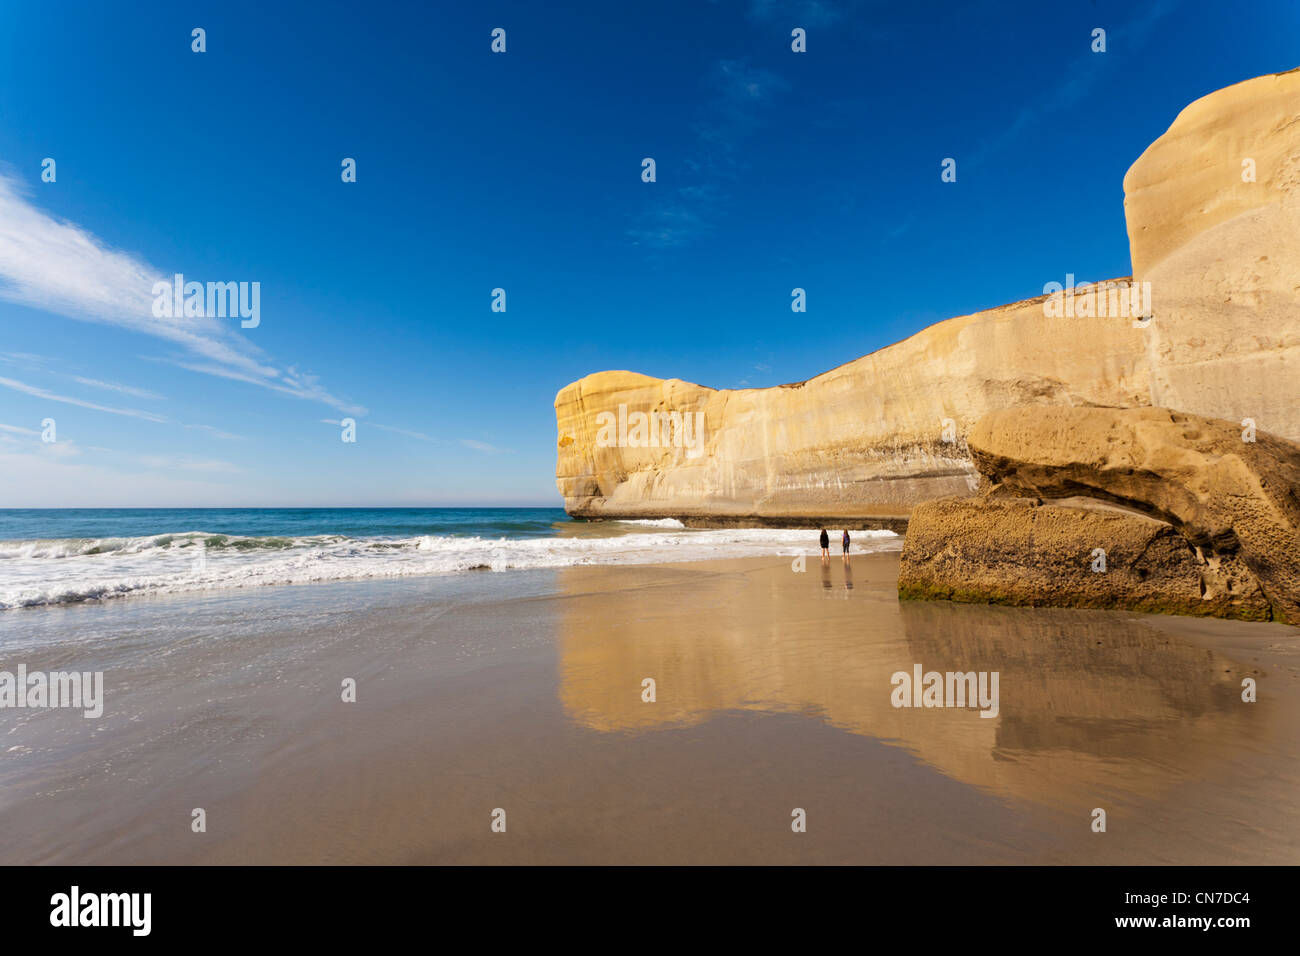 Tunnel Beach, Dunedin, Otago, two girls standing on the beach. - Stock Image